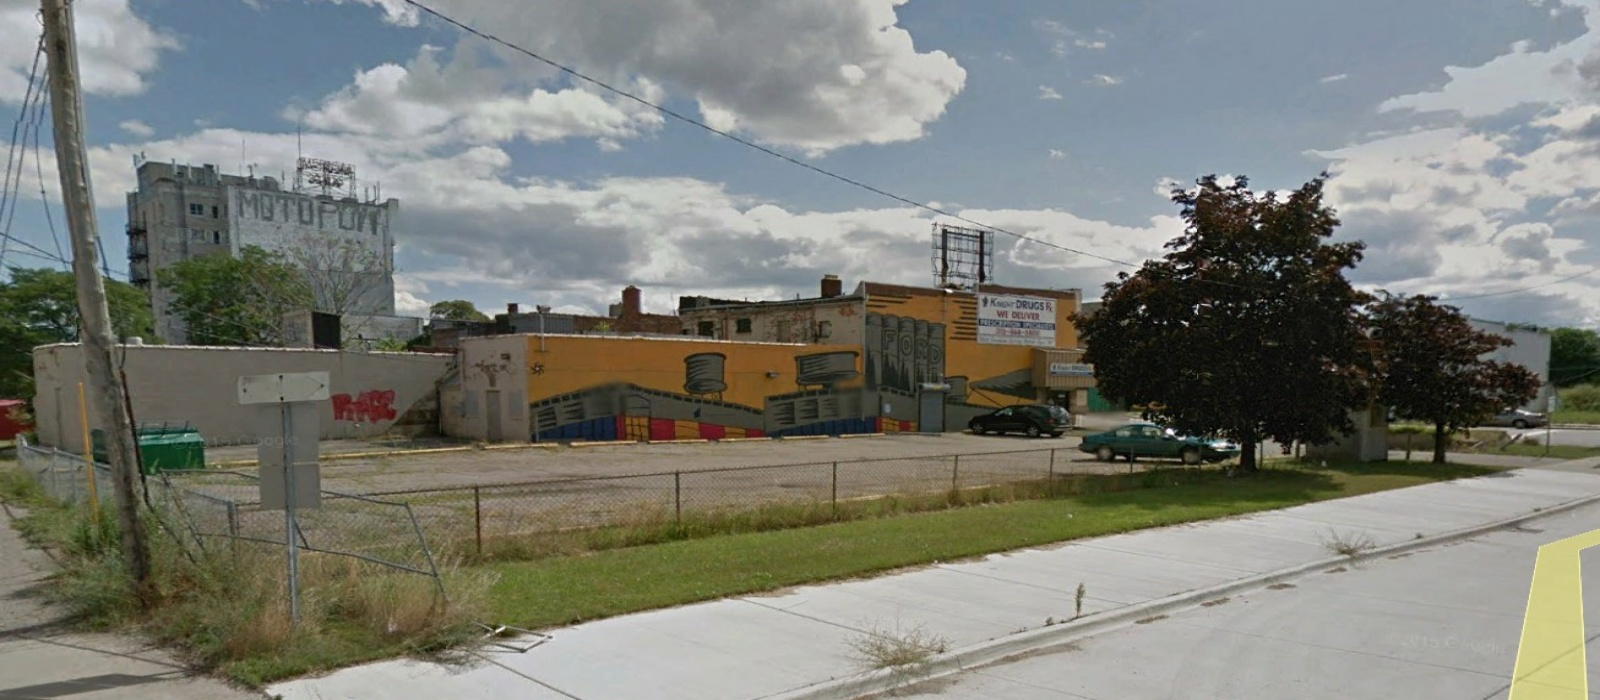 13814 WOODWARD, HIGHLAND PARK, Michigan 48203, ,Office,For Sale or Lease,13814 WOODWARD,1004